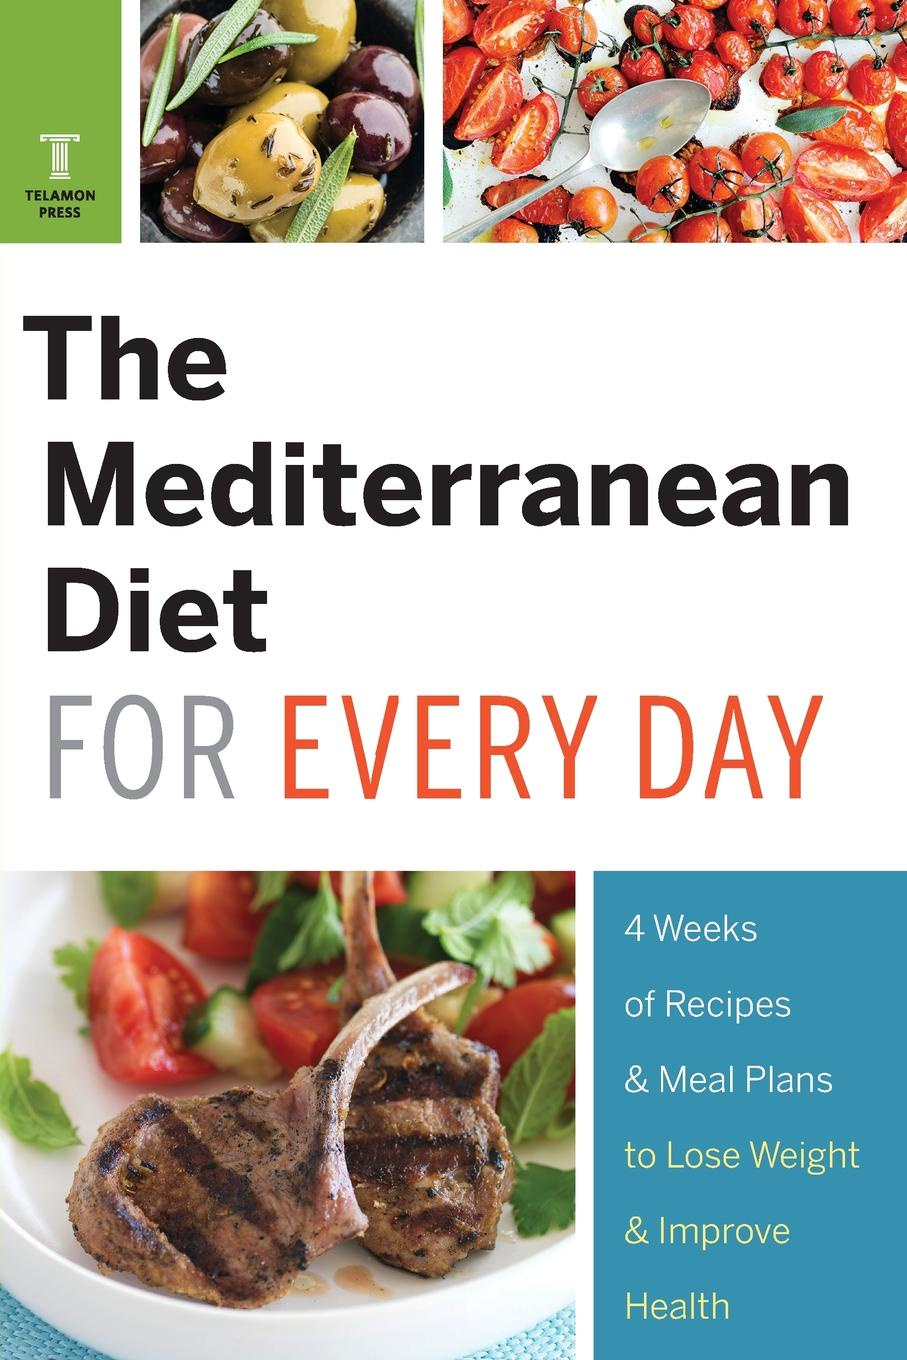 Telamon Press Mediterranean Diet for Every Day. 4 Weeks of Recipes & Meal Plans to Lose Weight